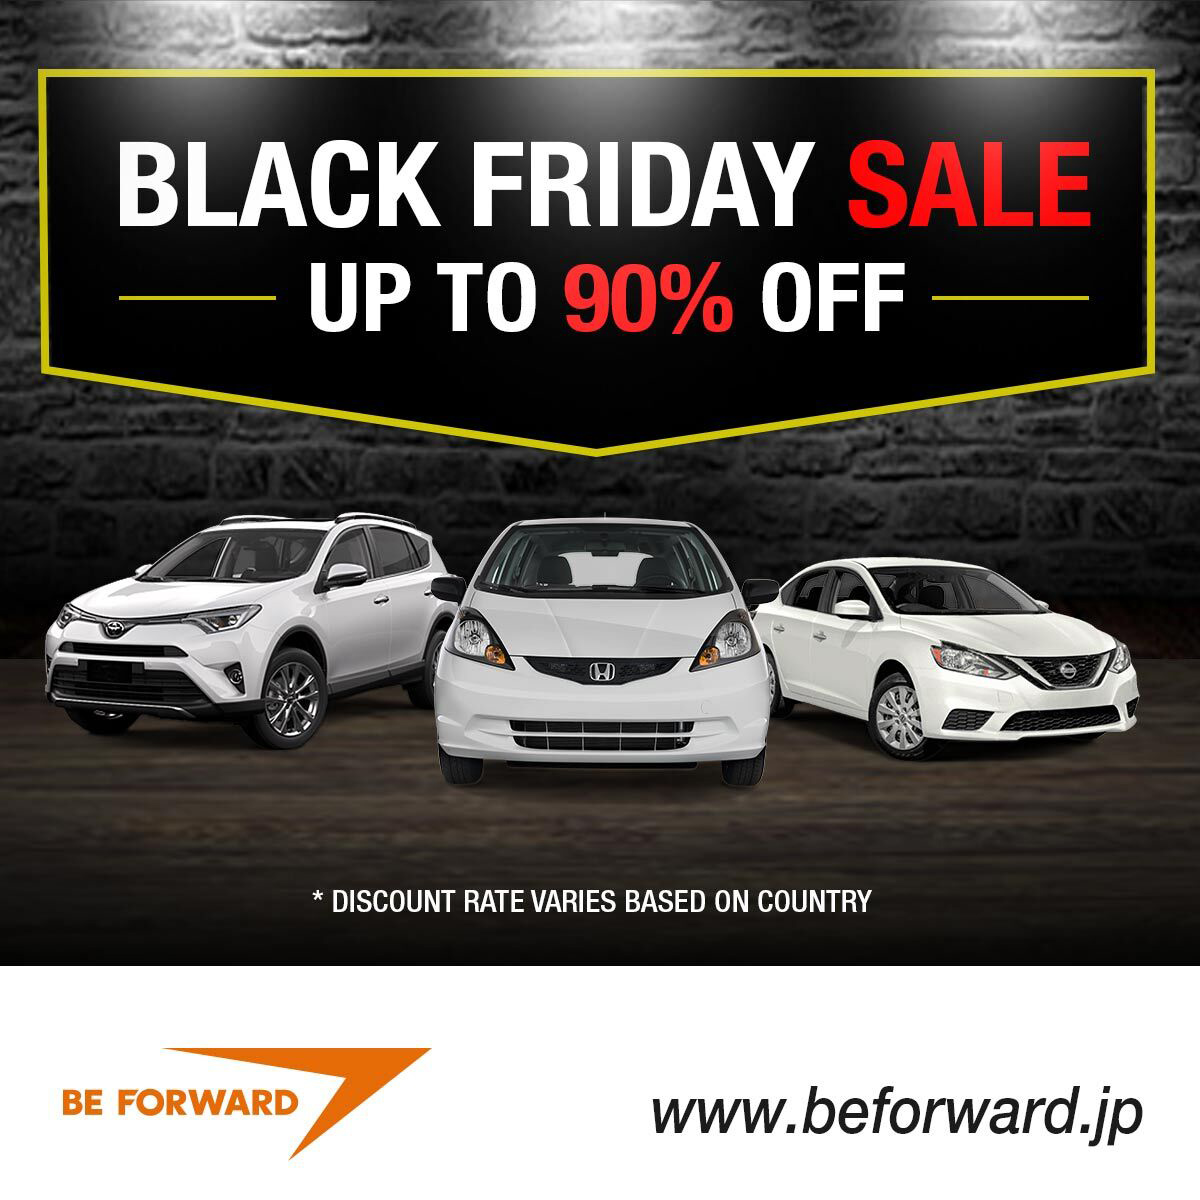 Black Friday Sale - Find Japanese used cars up to 90% off!